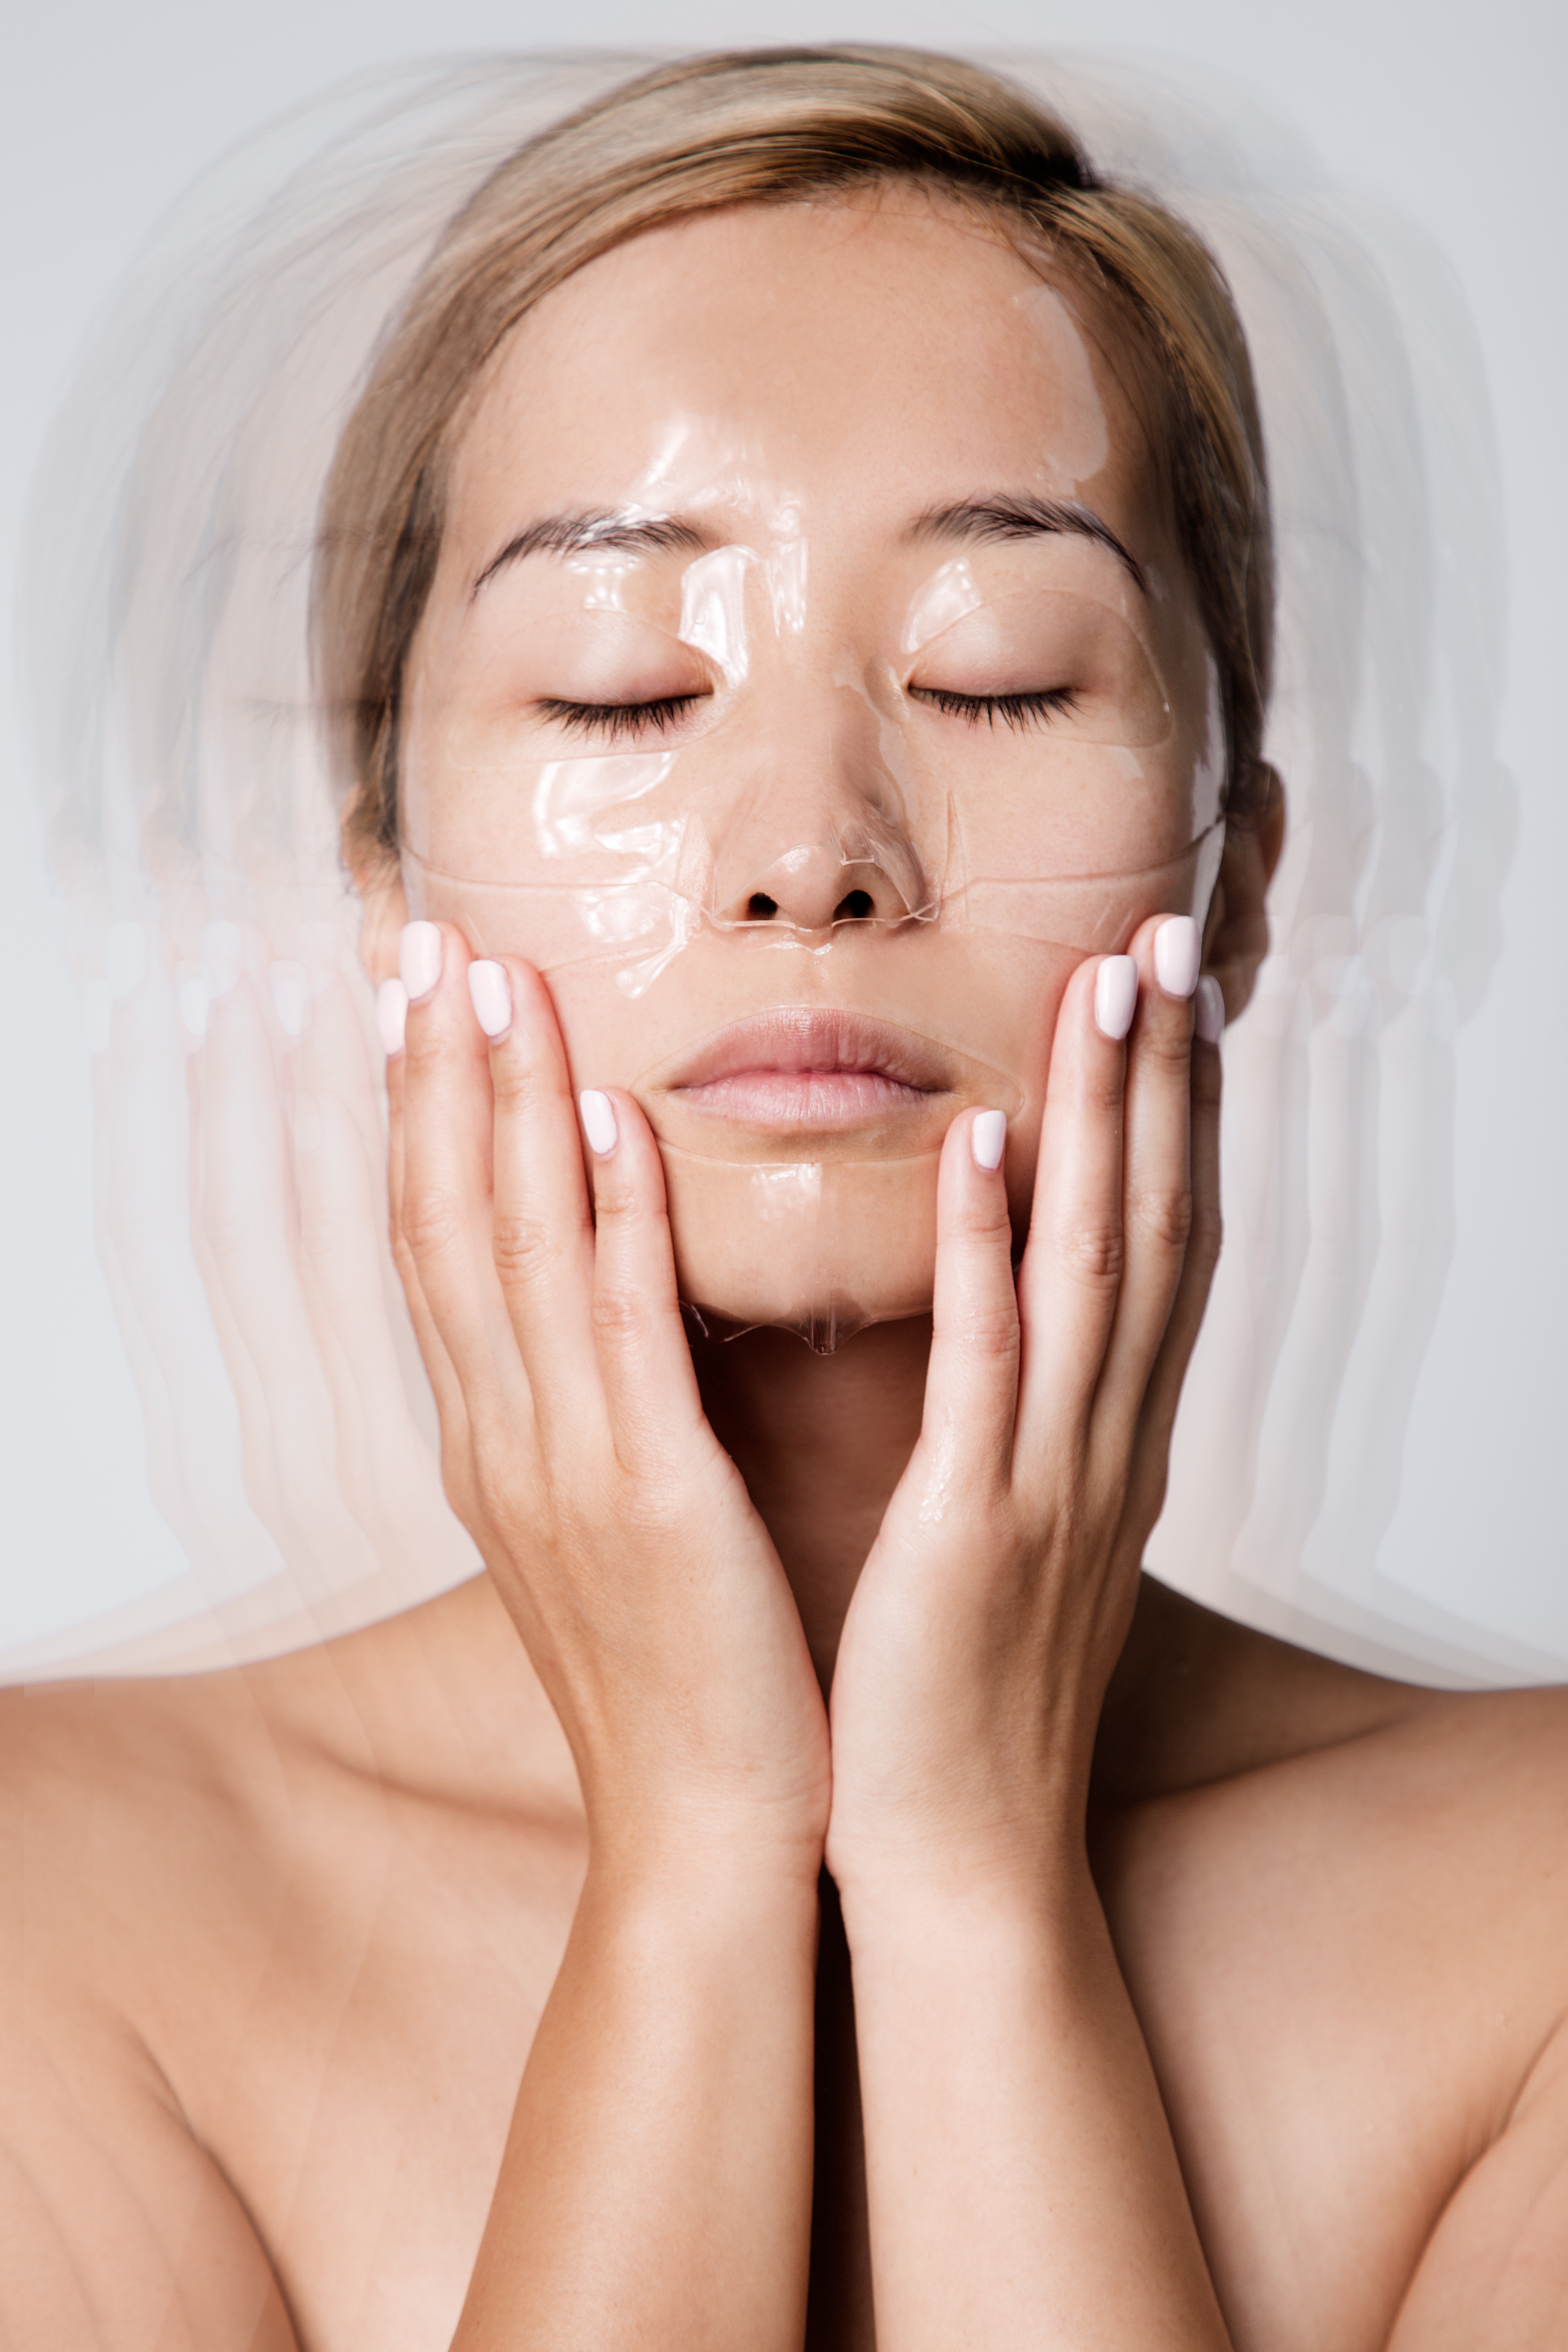 5-korean-face-masks-you-need-to-know-karen-rosalie-9.jpg